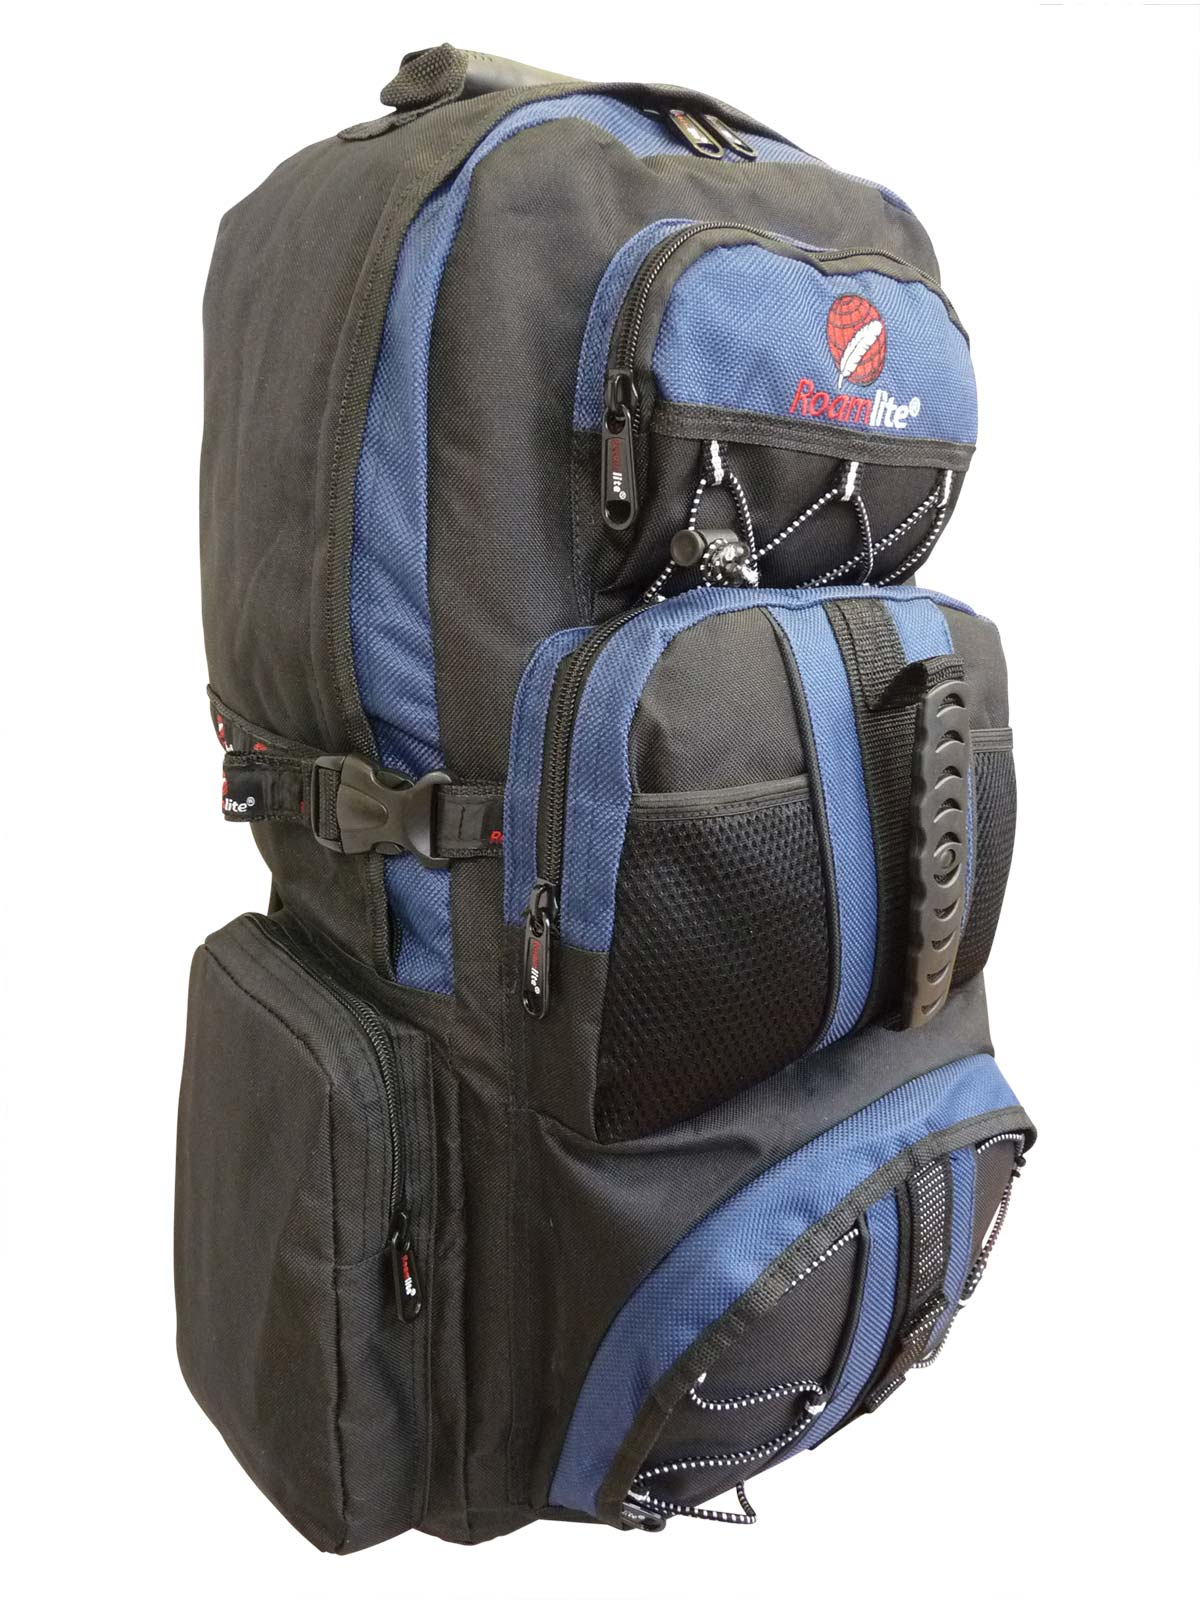 55 Litre Backpack Roamlite RL01KNrs